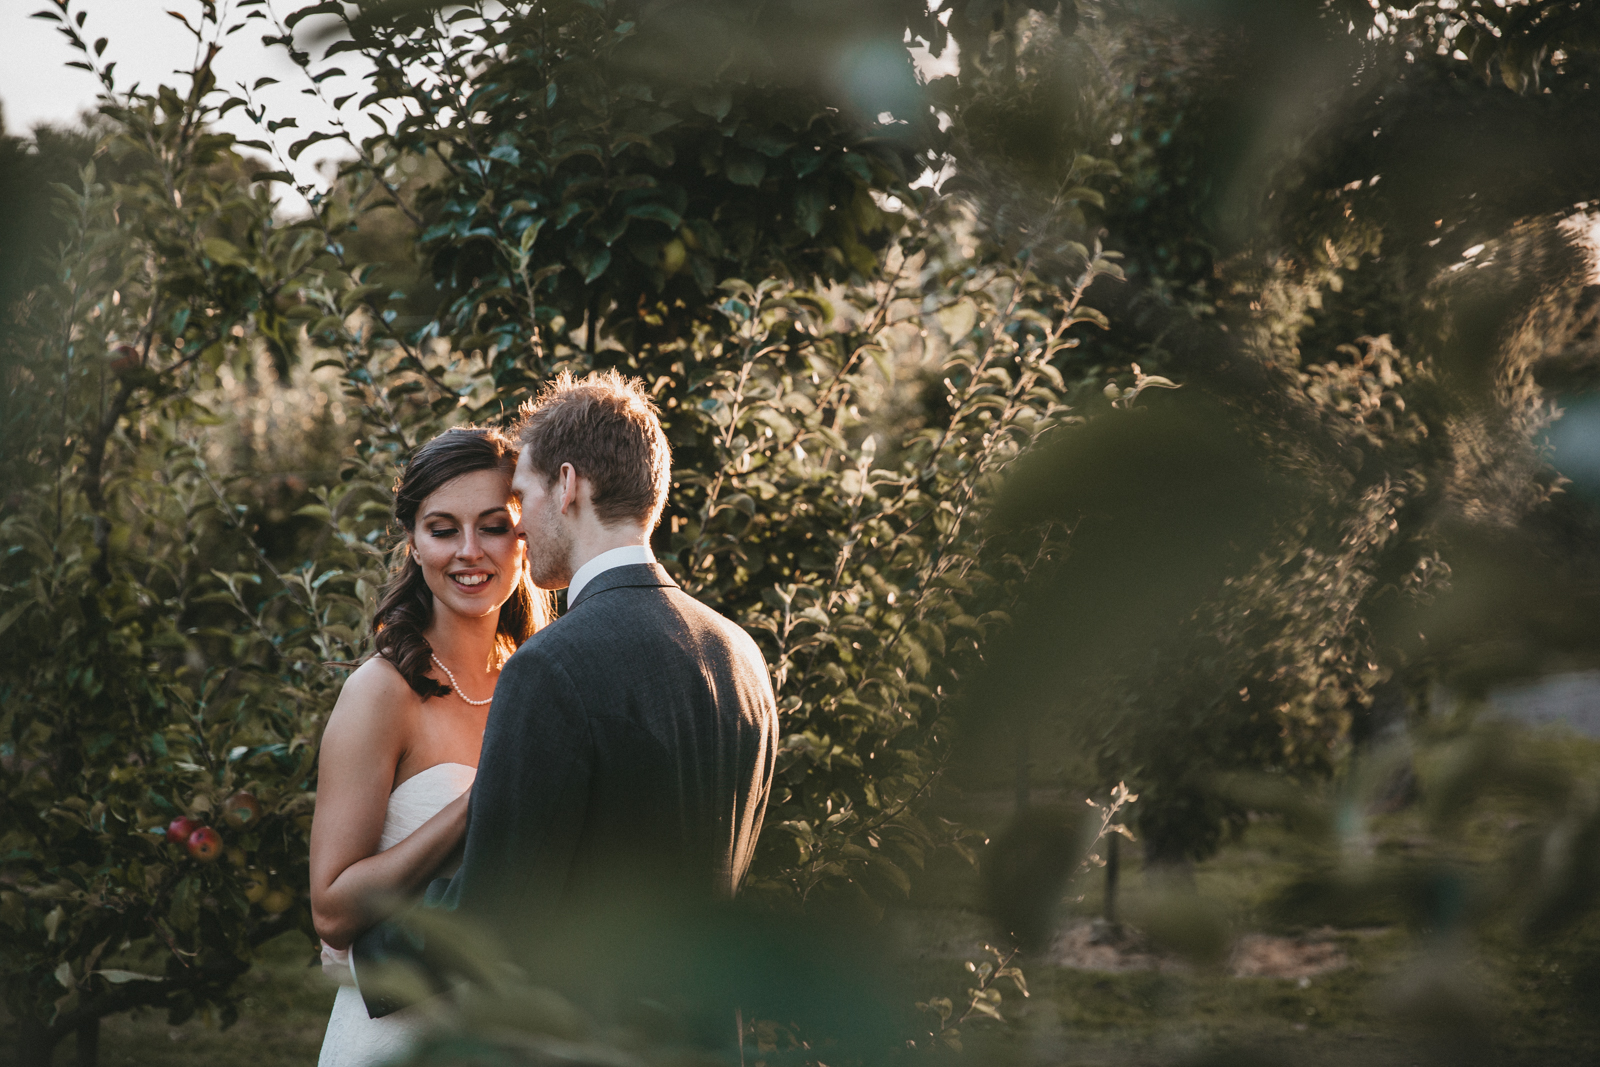 Chris Bradshaw Wedding Photography - Simon & Amanda Wedding Photos-109